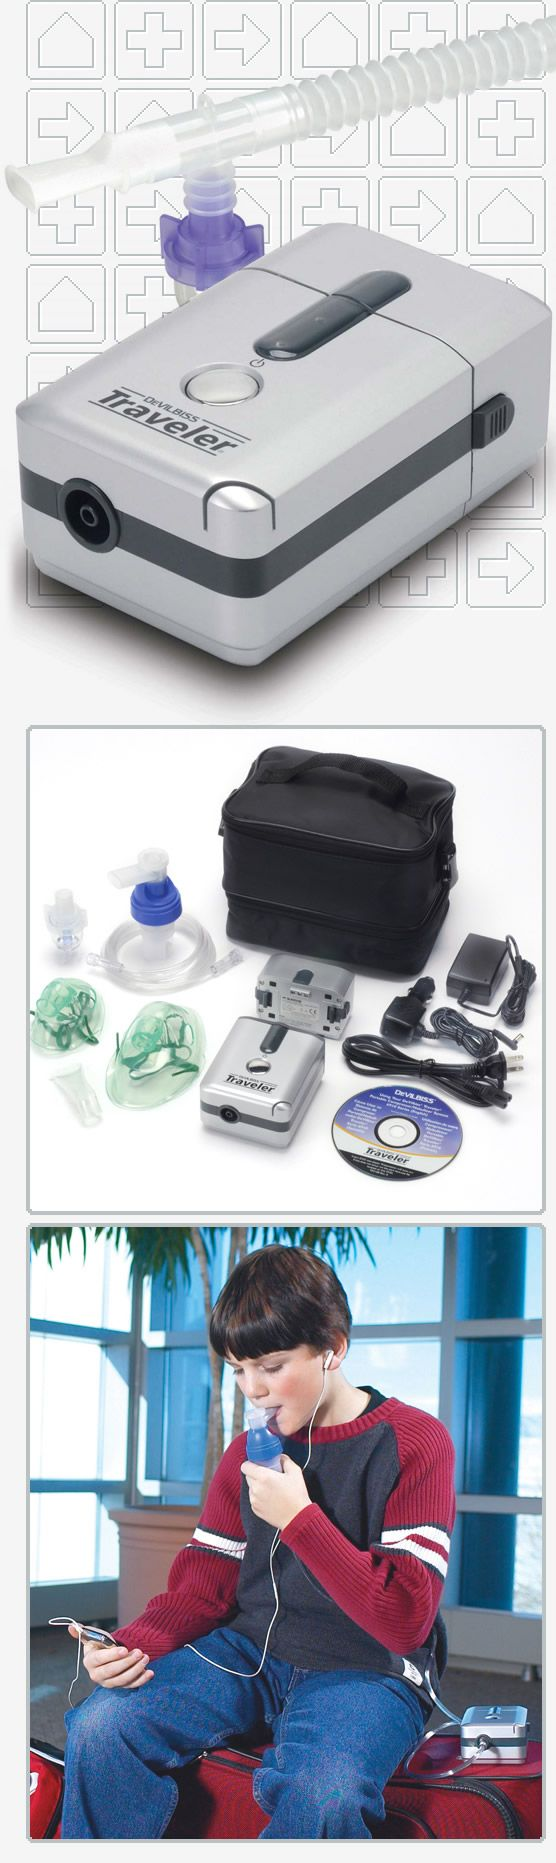 TRAVELER PORTABLE COMPRESSOR MACHINE KIT WITH NEBULIZERS http://www.directhomemedical.com/6910p-dr-traveler-portable-compressor-nebulizer.html#.VzN8TGPTy-I